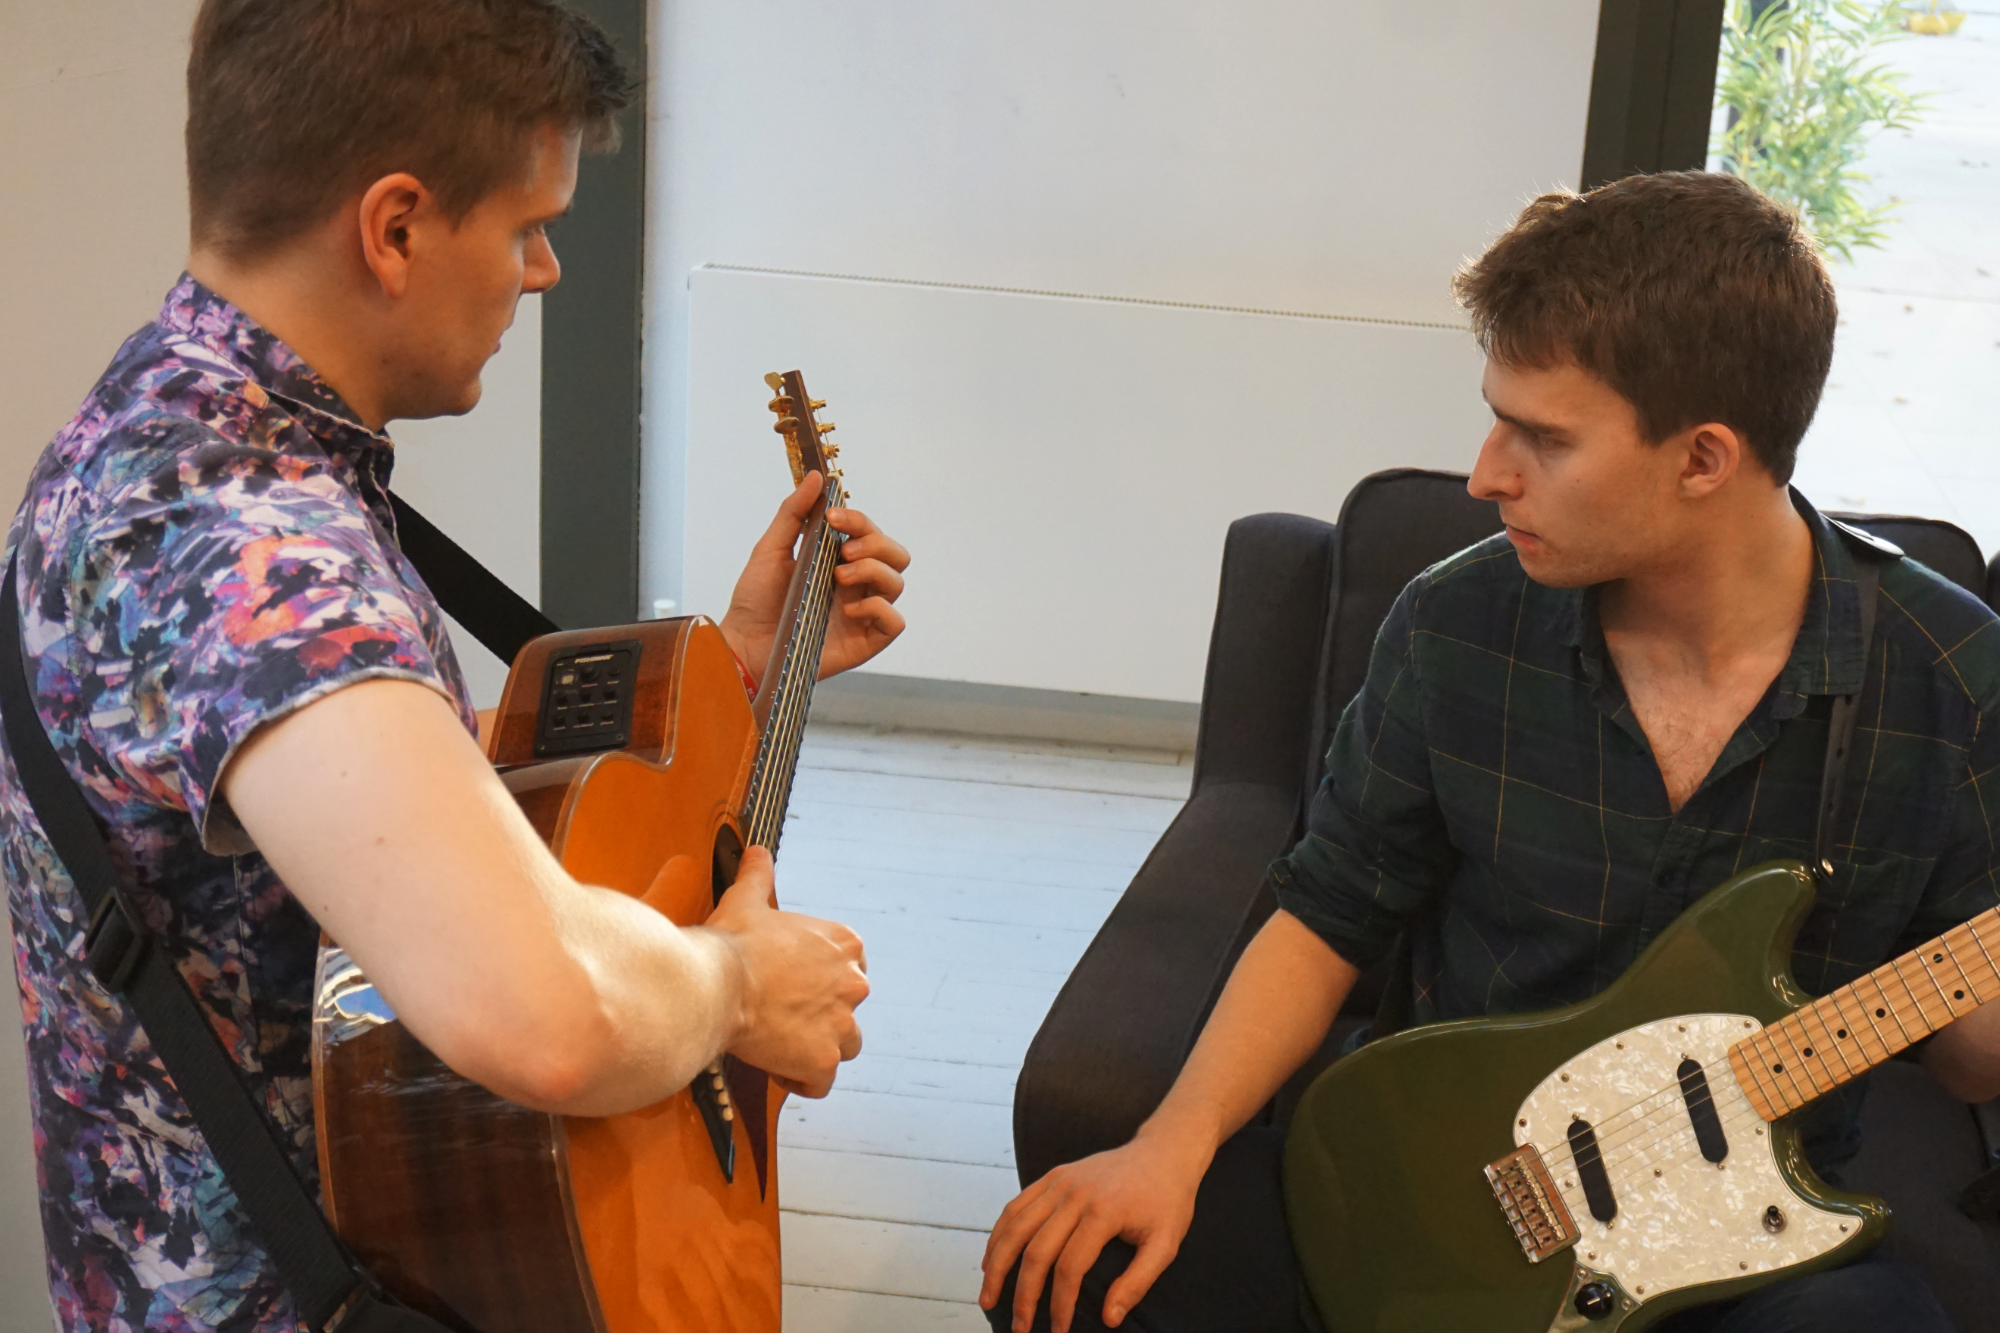 Darryl, teacher - with Rob helping him with his fingerpicking in this photo